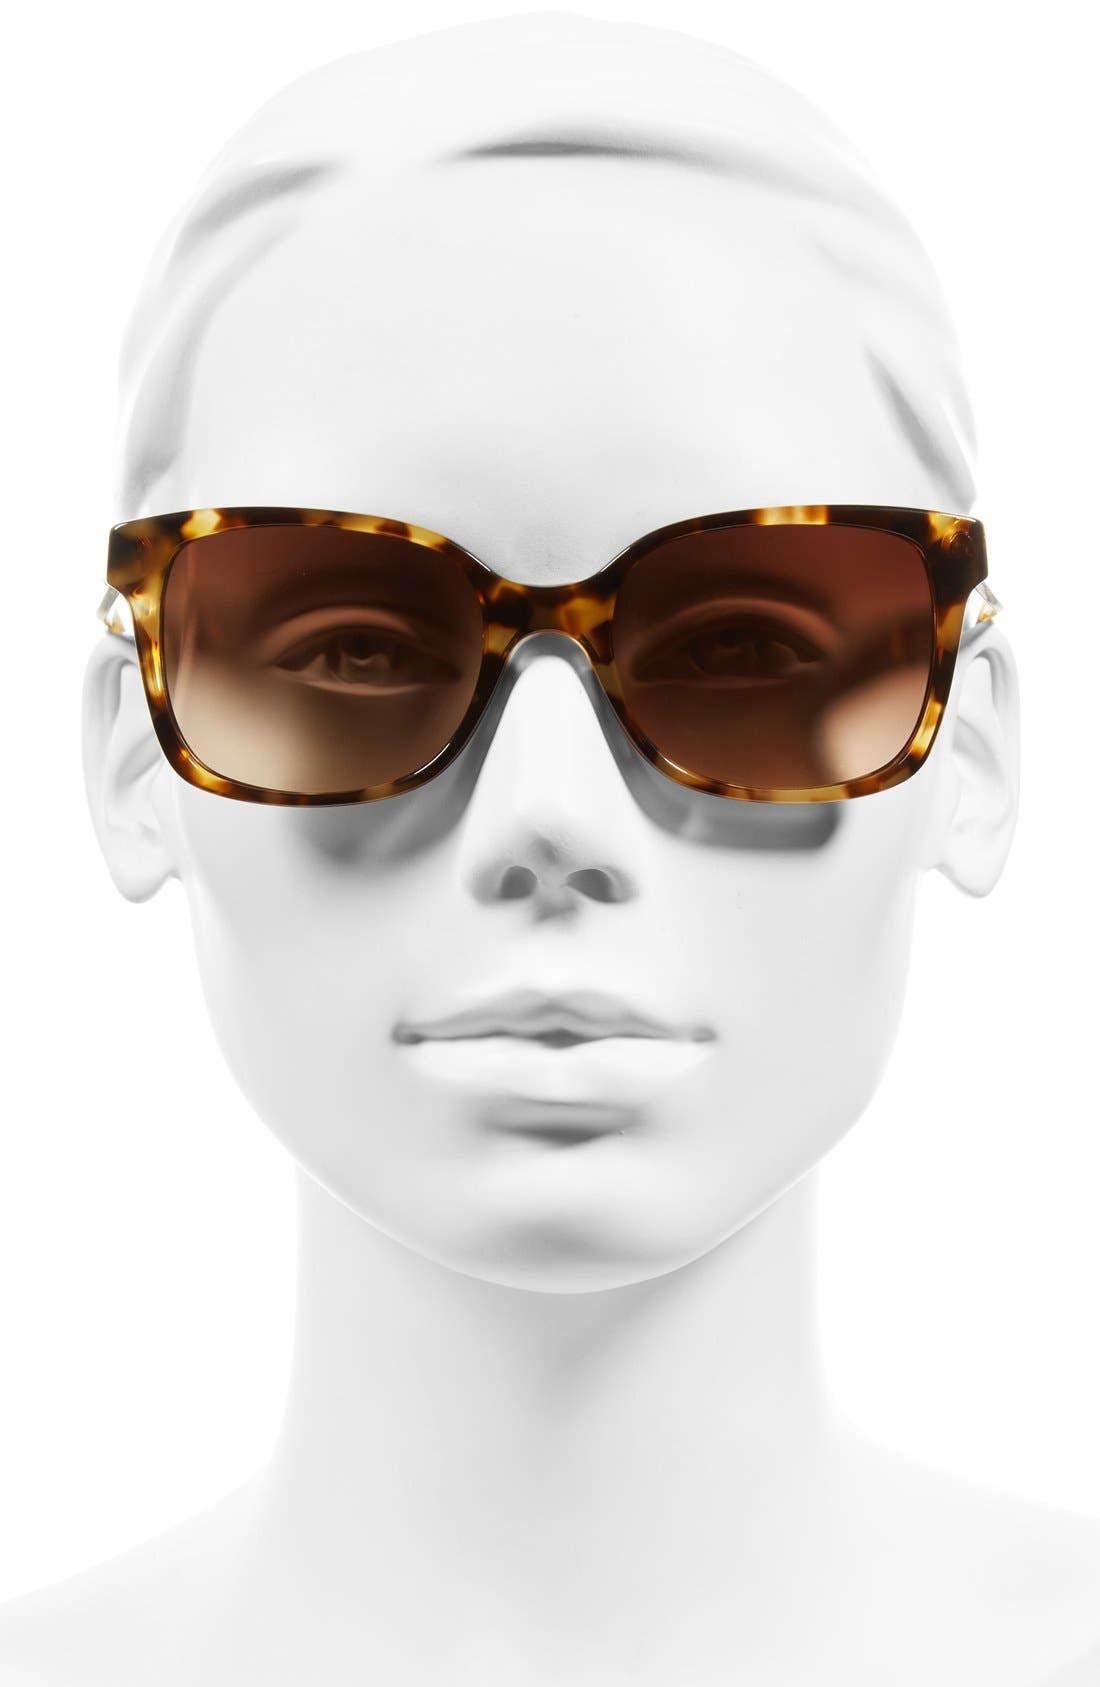 54mm Sunglasses,                             Alternate thumbnail 2, color,                             Light Tortoise